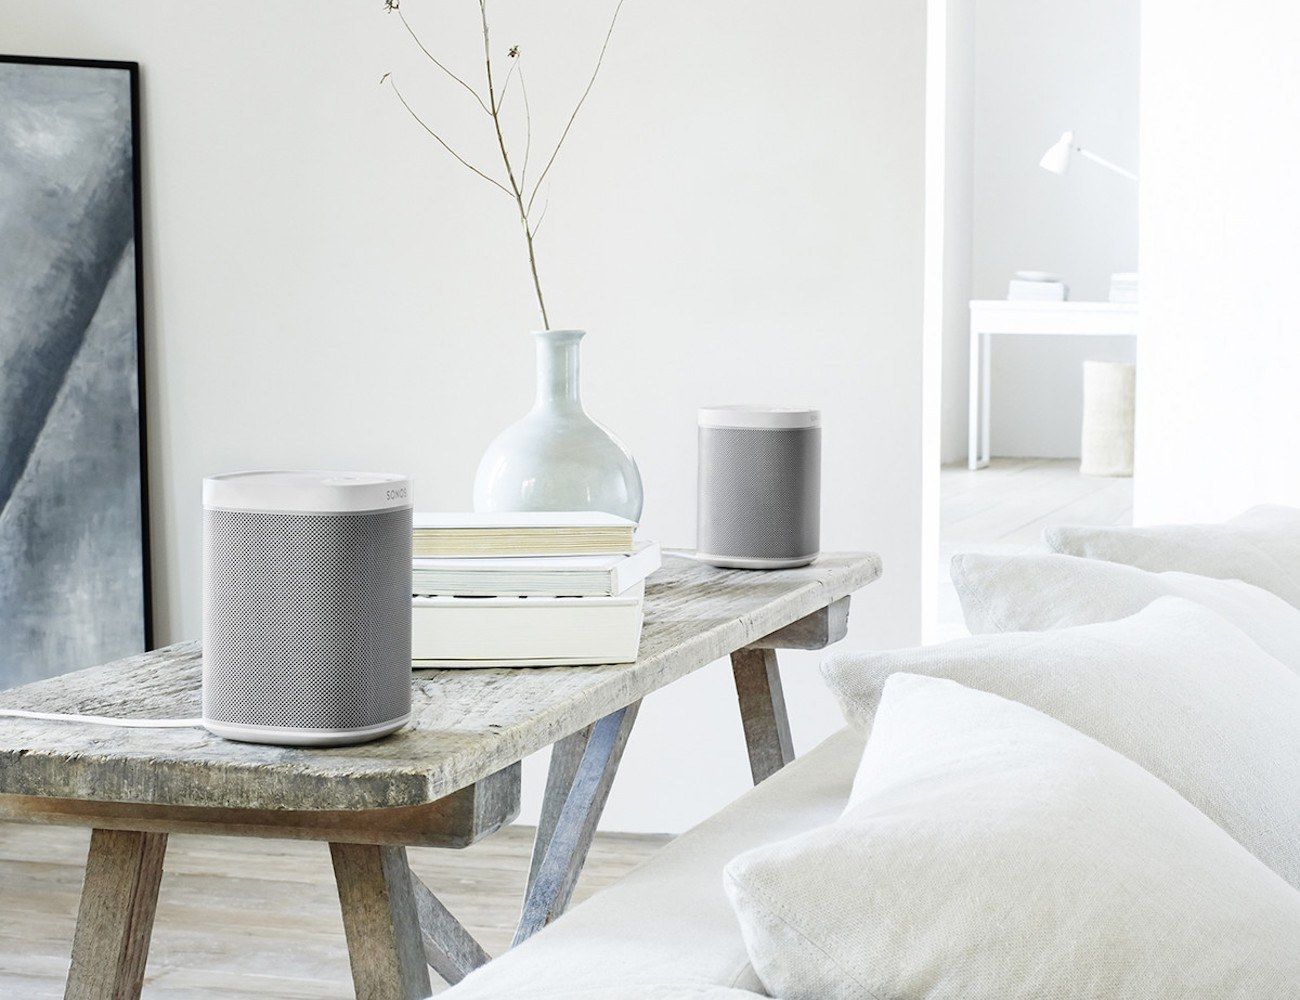 Sonos PLAY:1 Wireless Smart Speaker